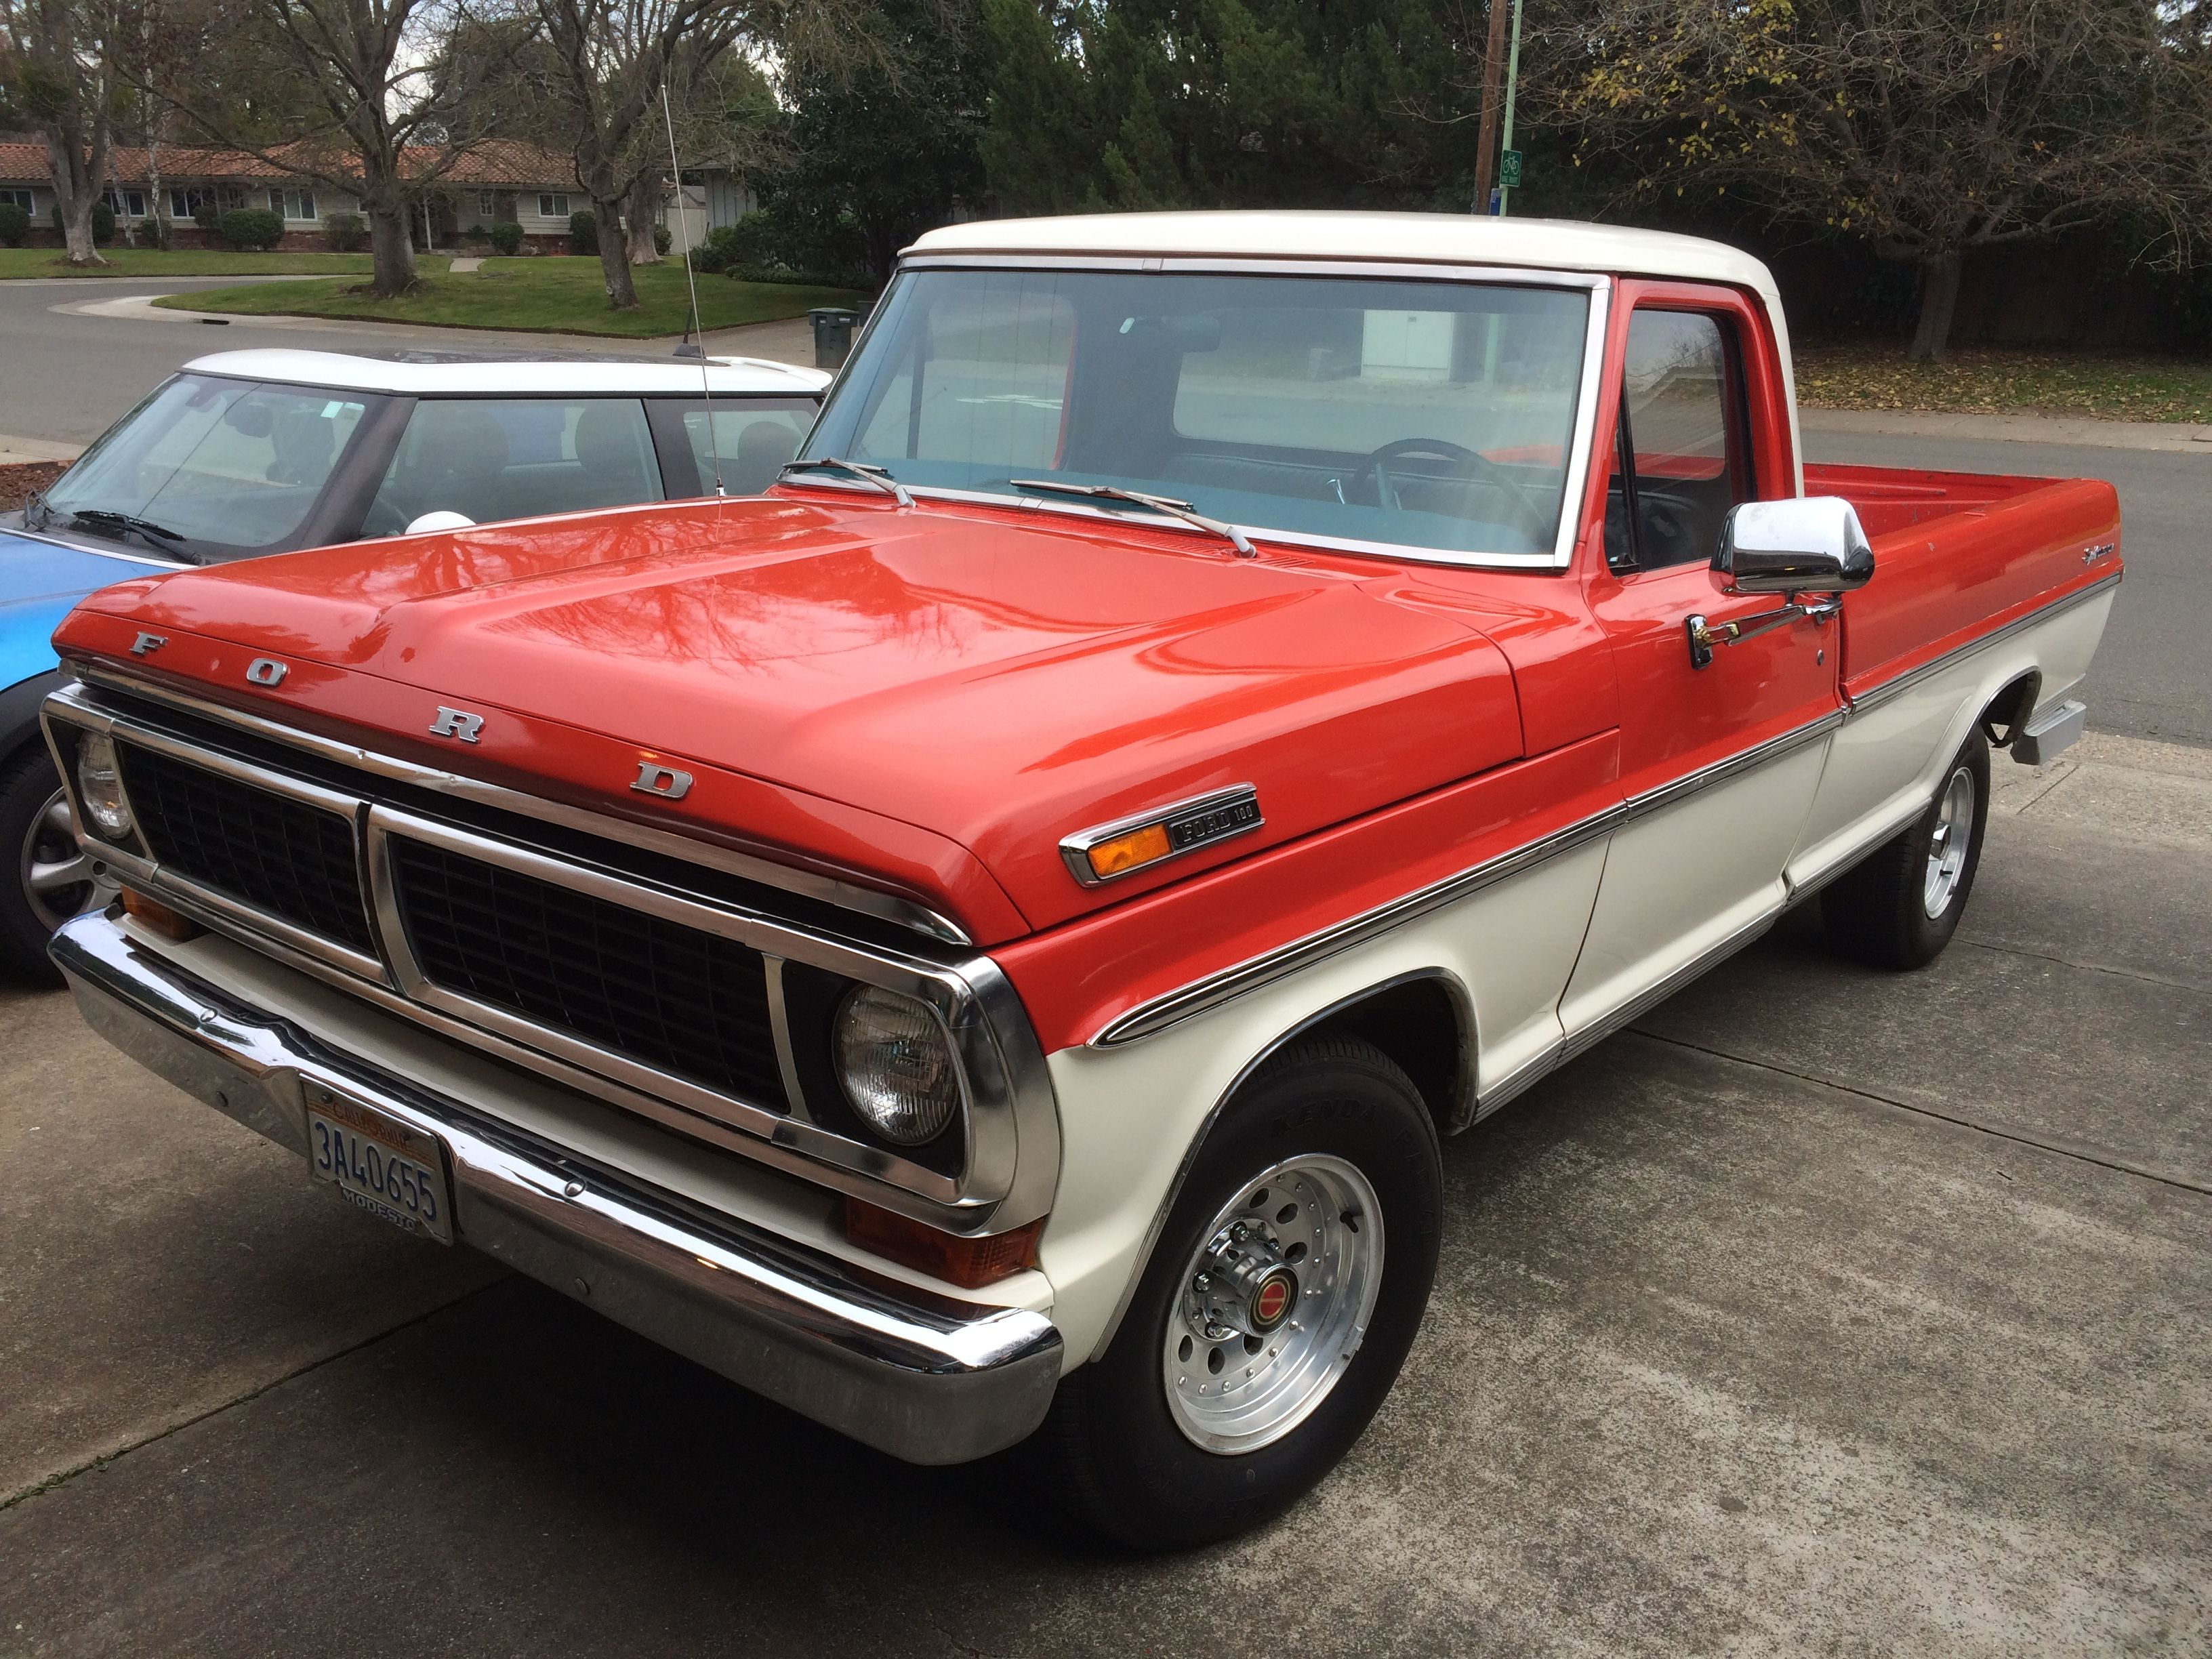 1970 Ford F100 Sport Custom Long Bed Ford Pickup Trucks Ford Trucks Ford Pickup